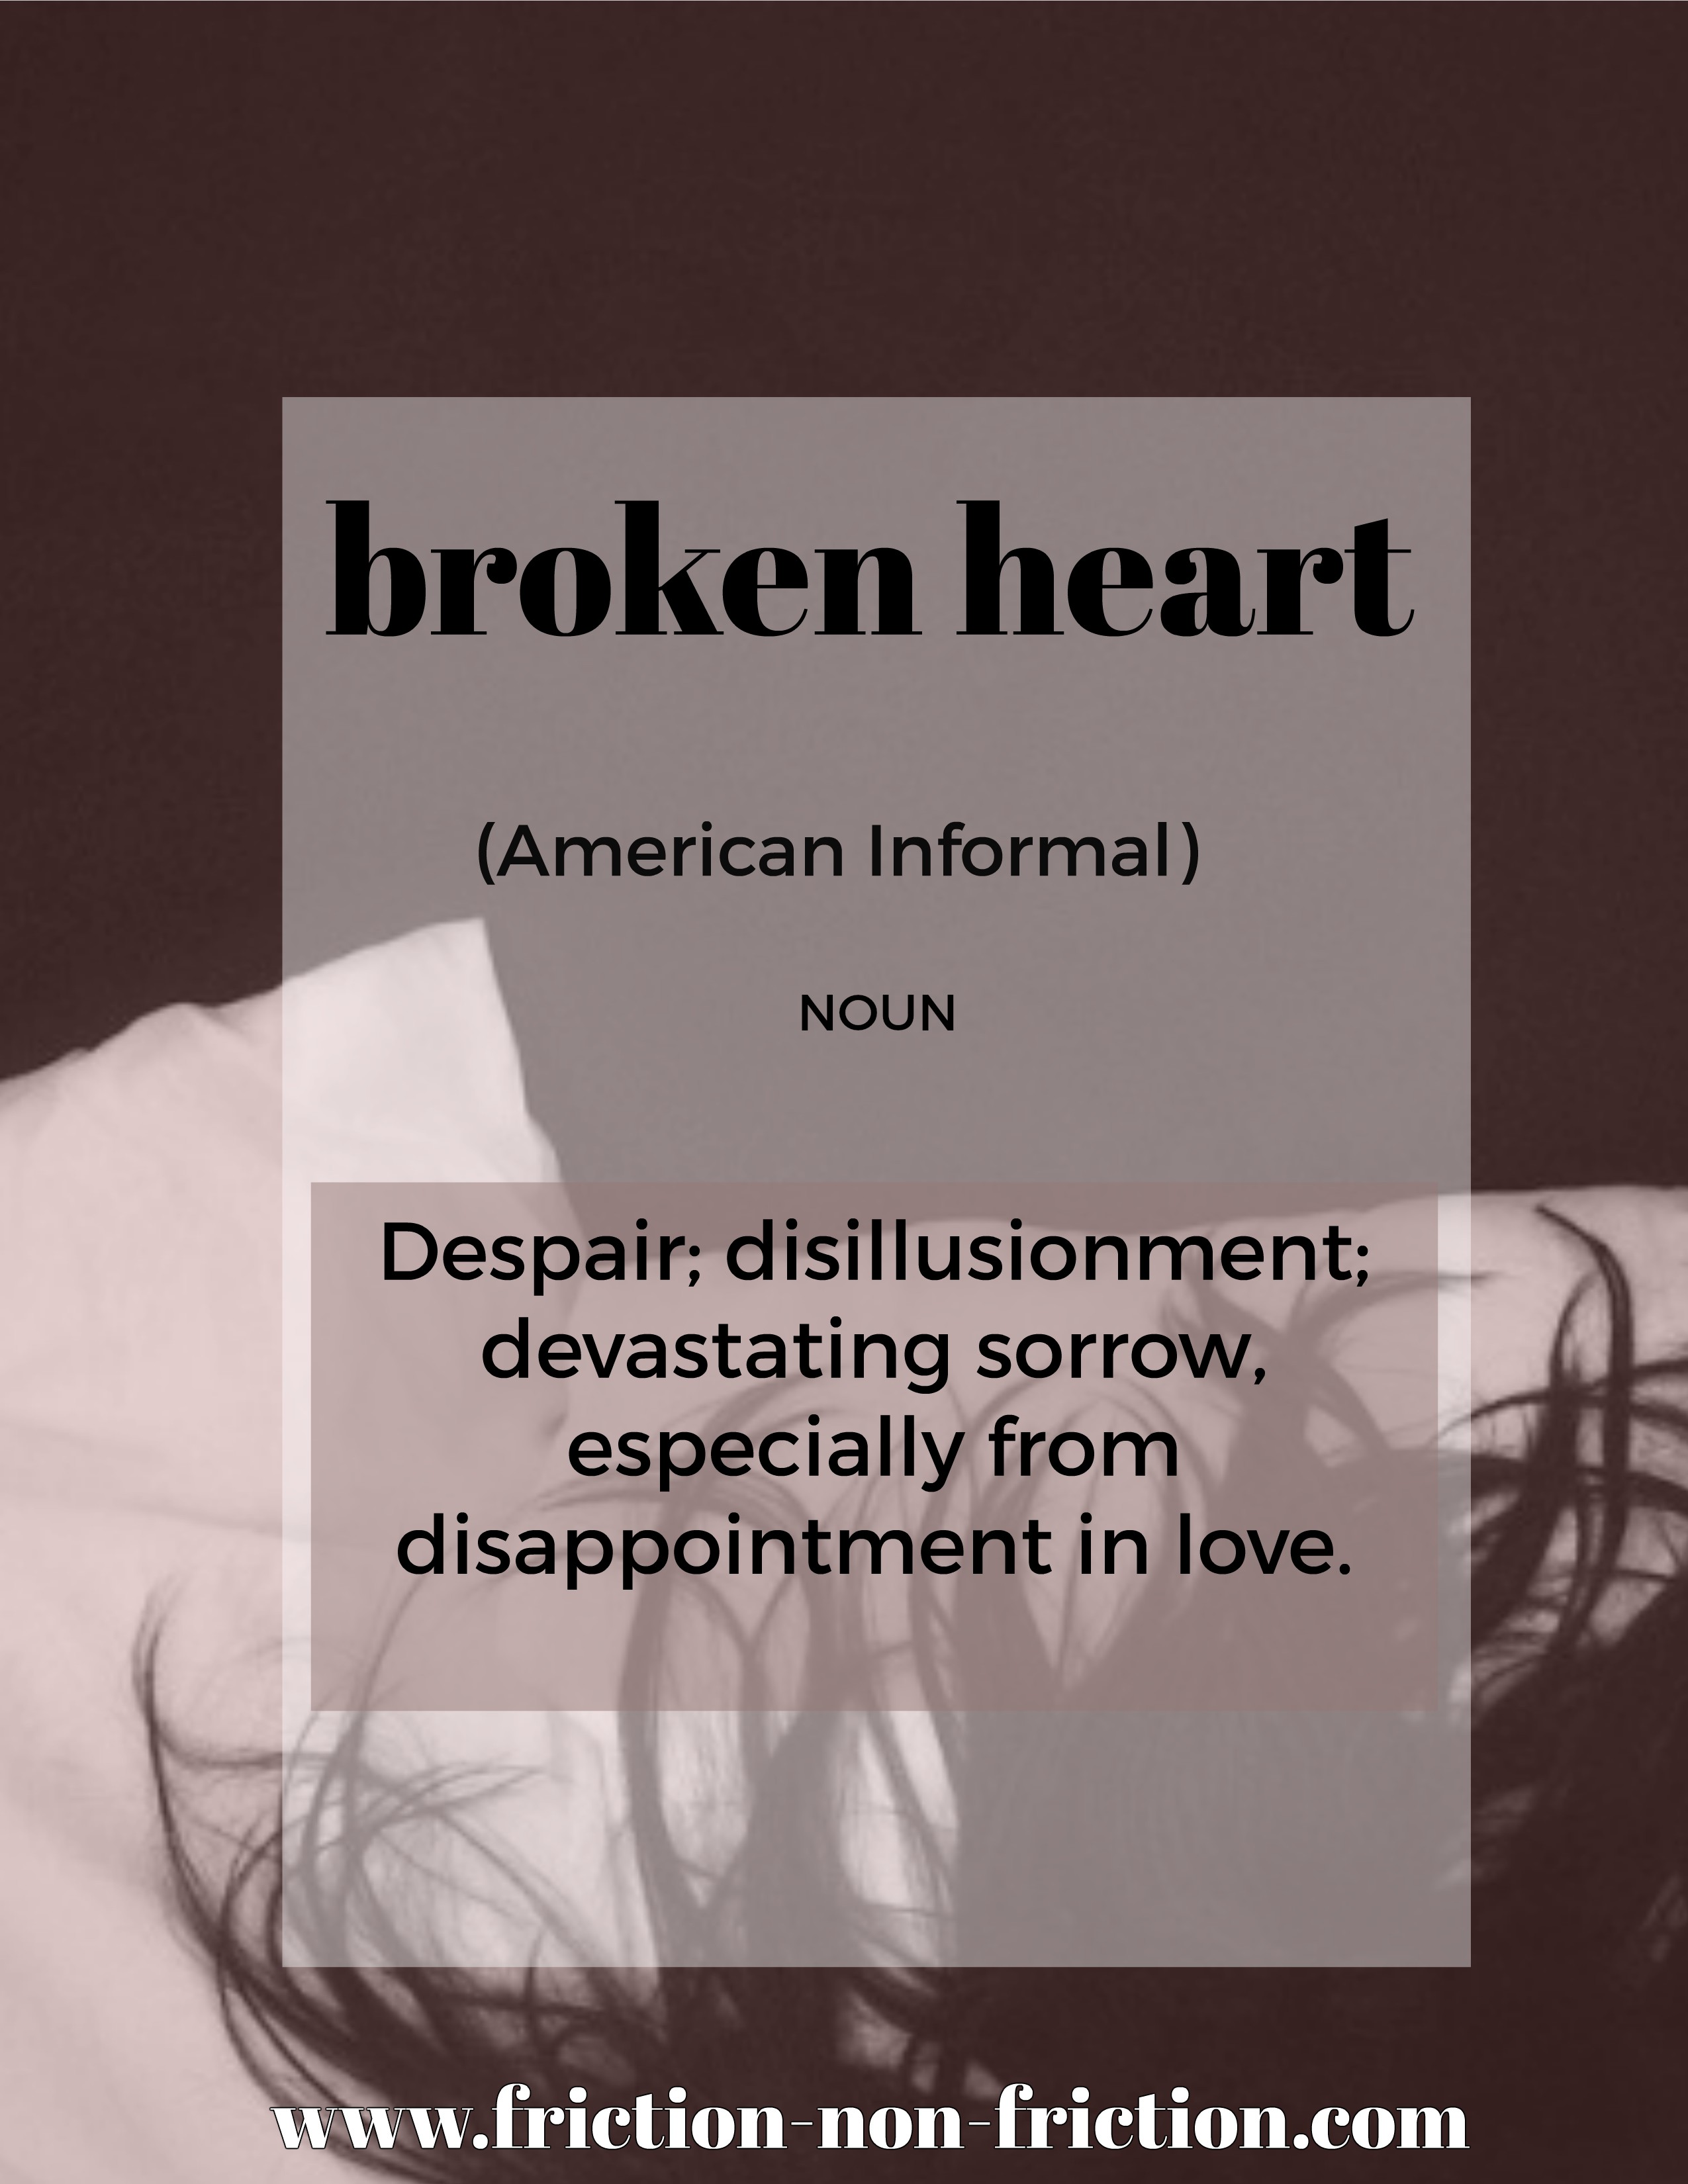 Broken Heart -- another great FRICTIONARY definition from Friction|non|Friction